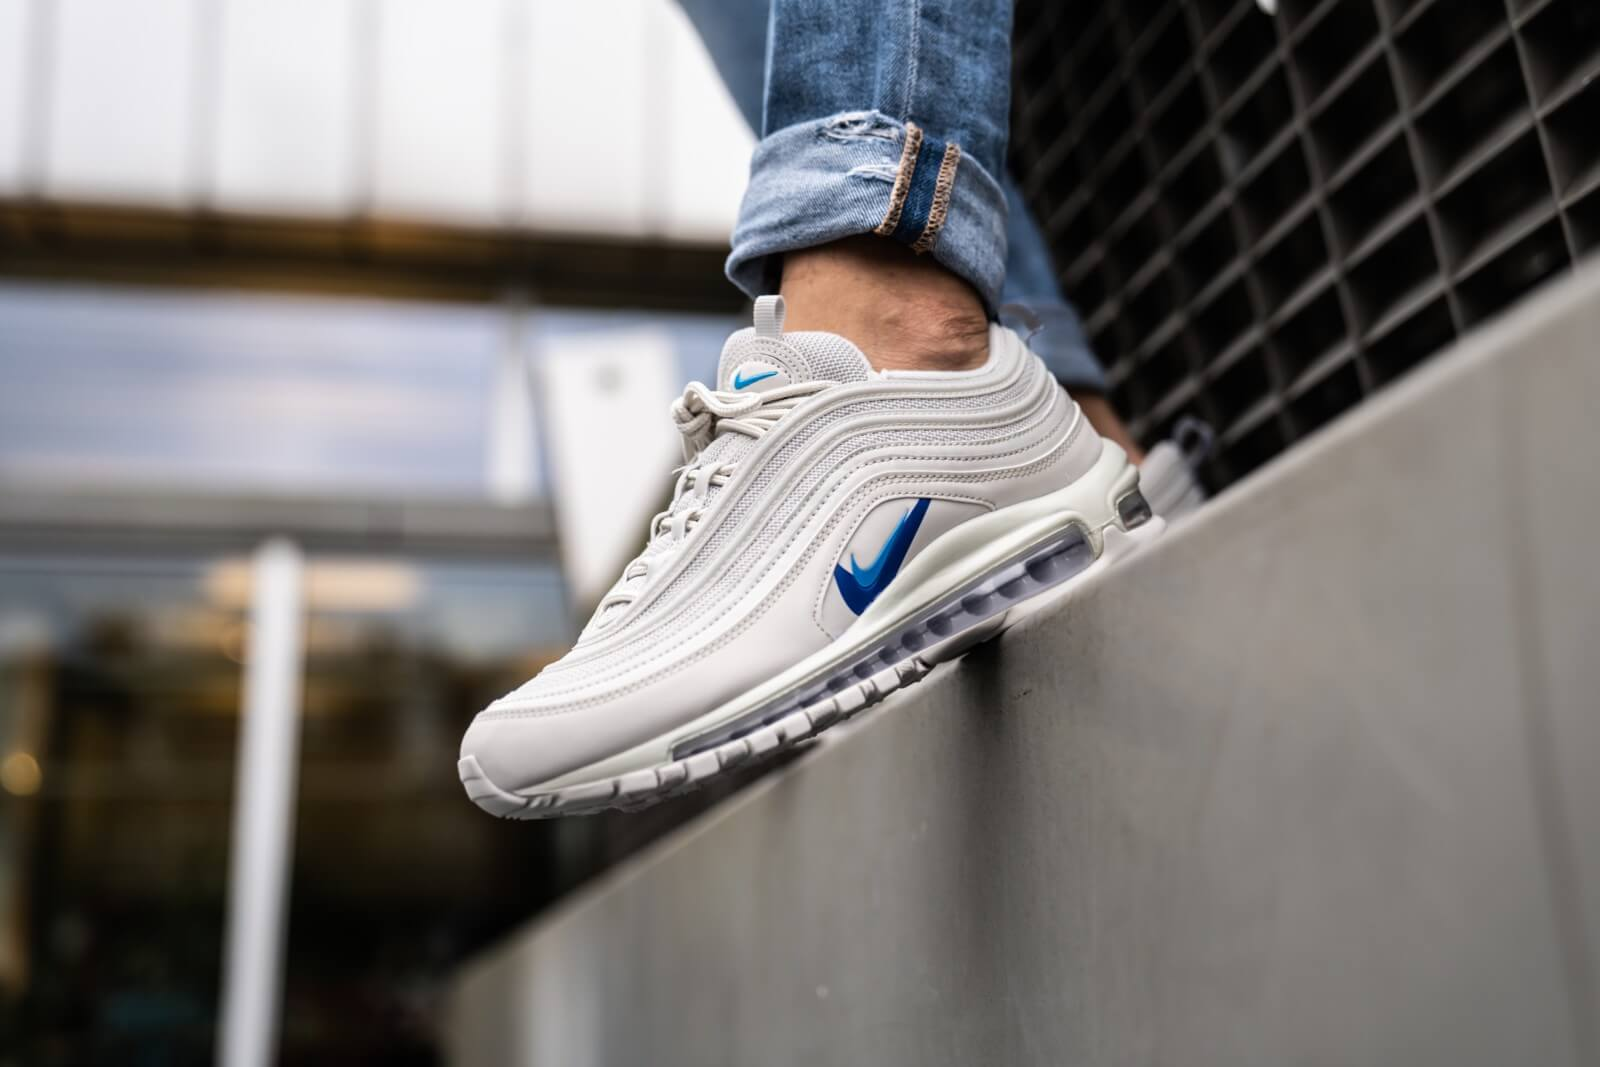 Nike Air Max 97 | White | Sneakers | CT2205 001 | Caliroots